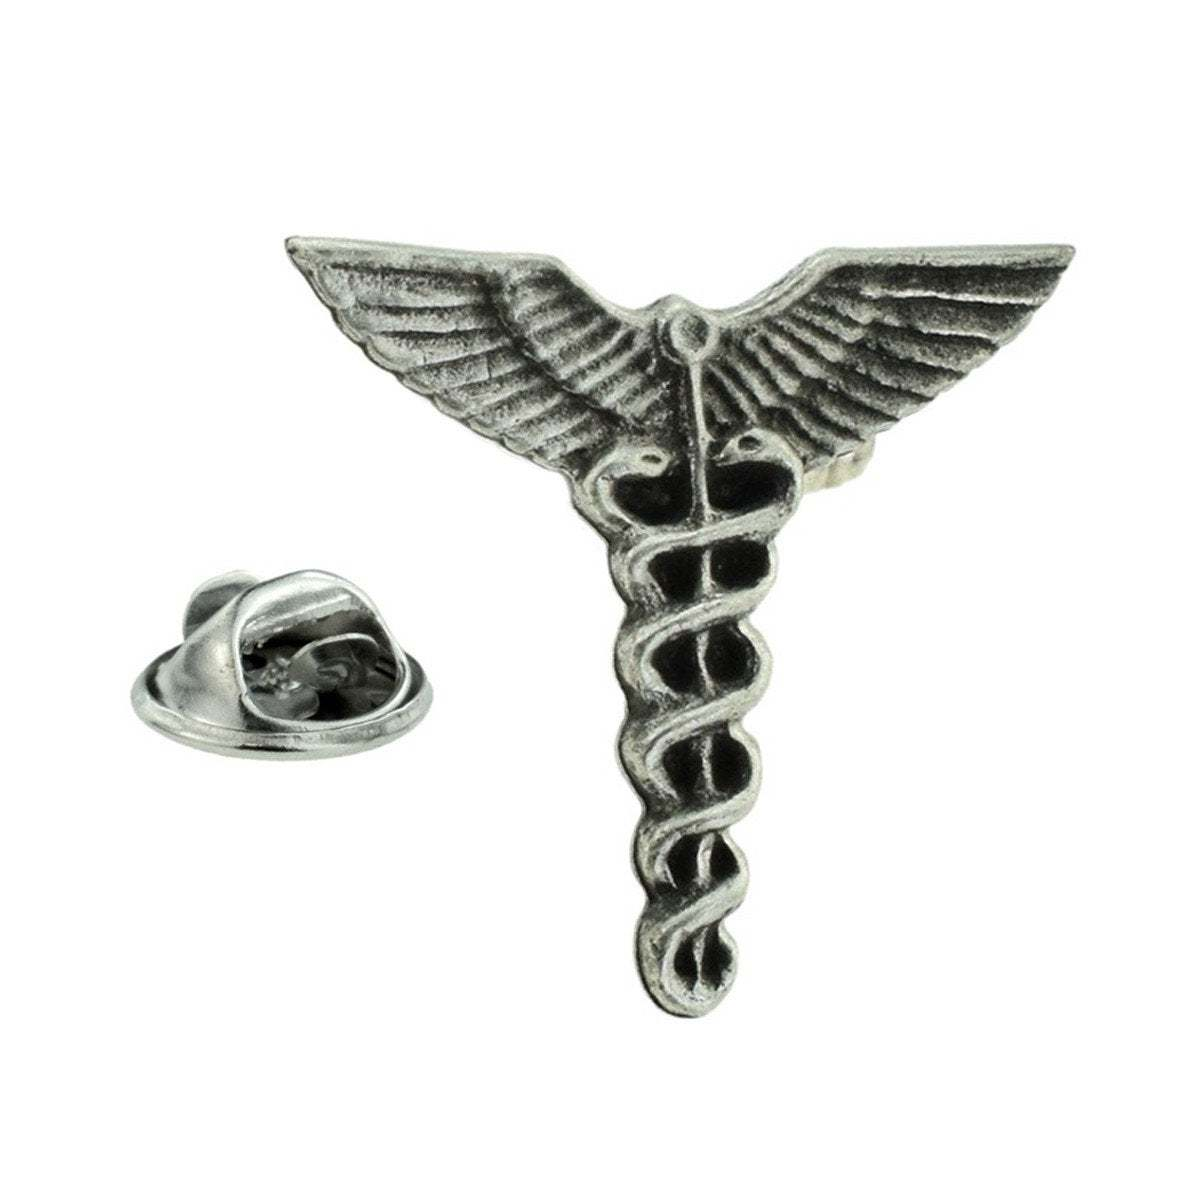 Silver Plated Caduceus Doctors Medical Lapel Pin Badge / tie pin. in gift box